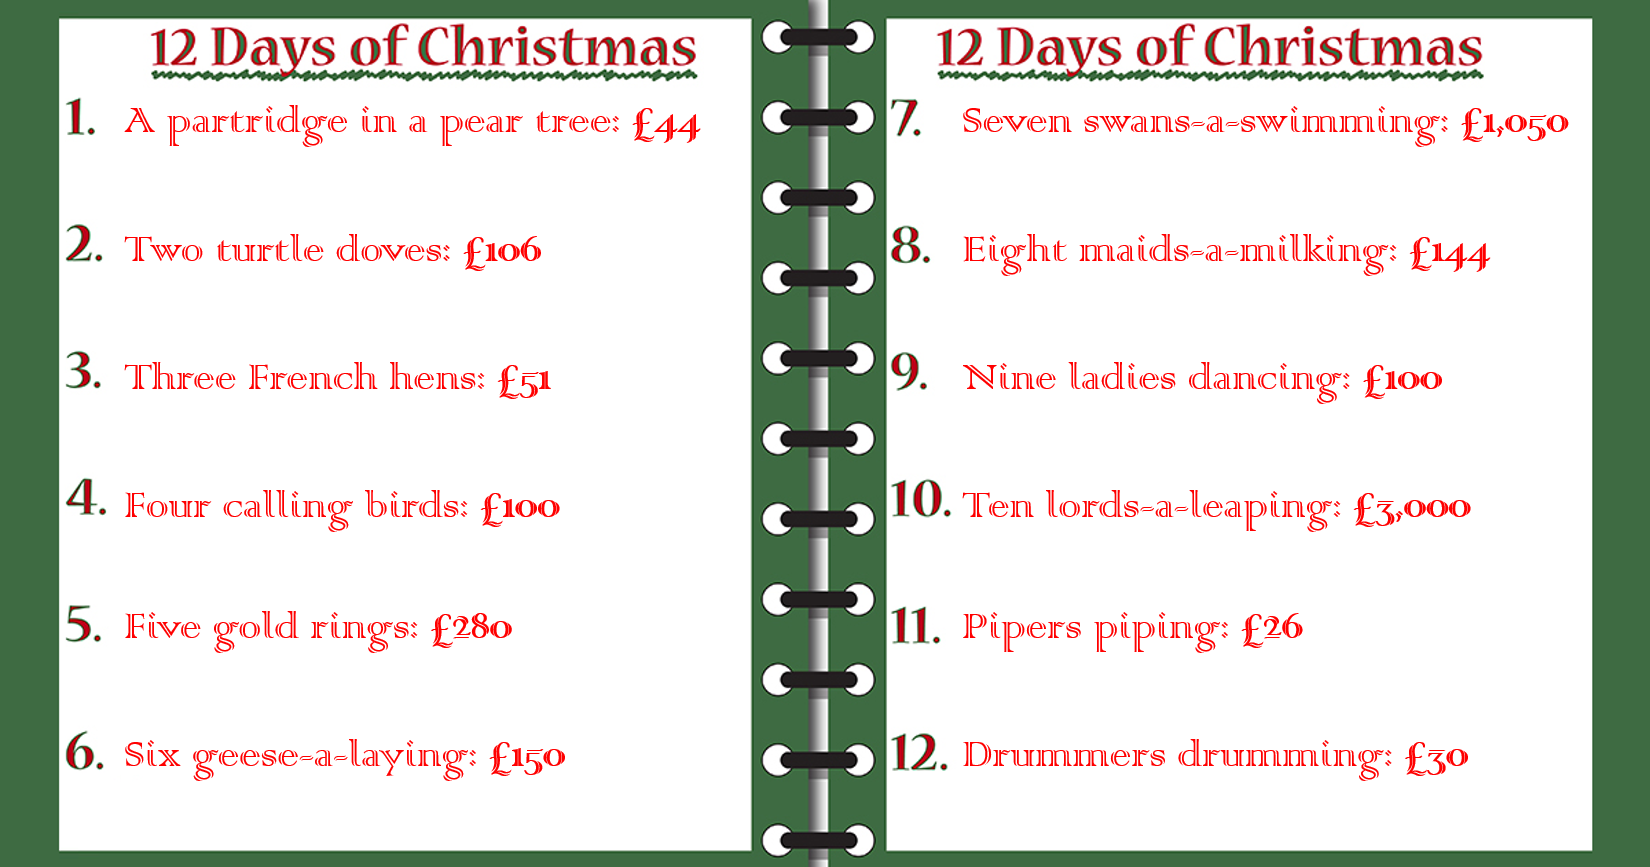 12 Days Of Christmas.5 000 The True Cost Of The The Twelve Days Of Christmas